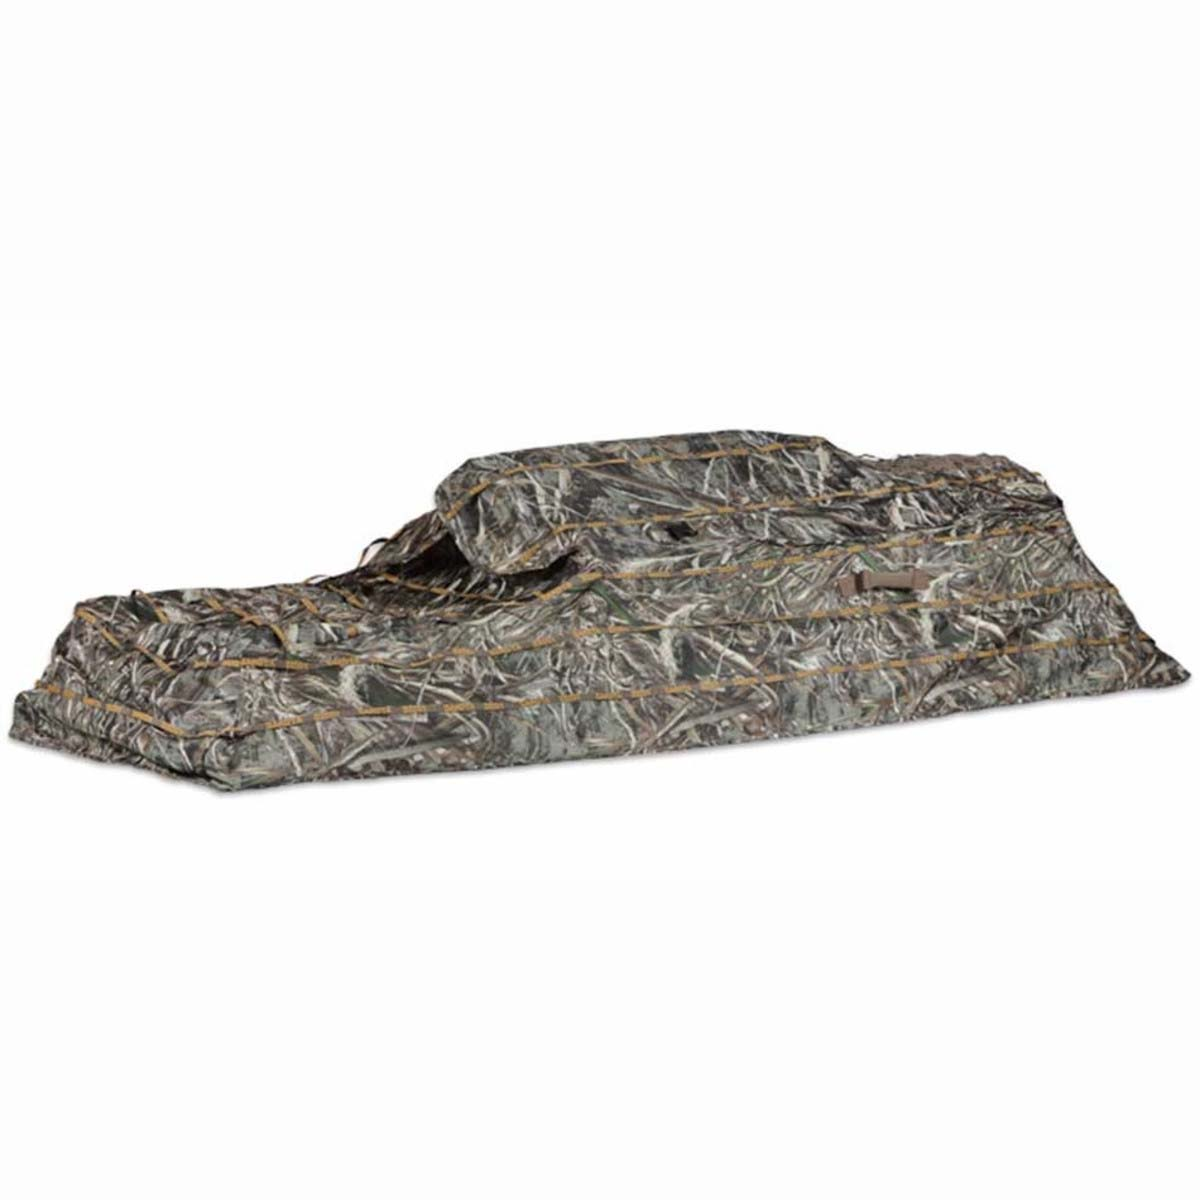 Dakota Decoy X-Series Collapsible Layout Blind, Realtree Max-5